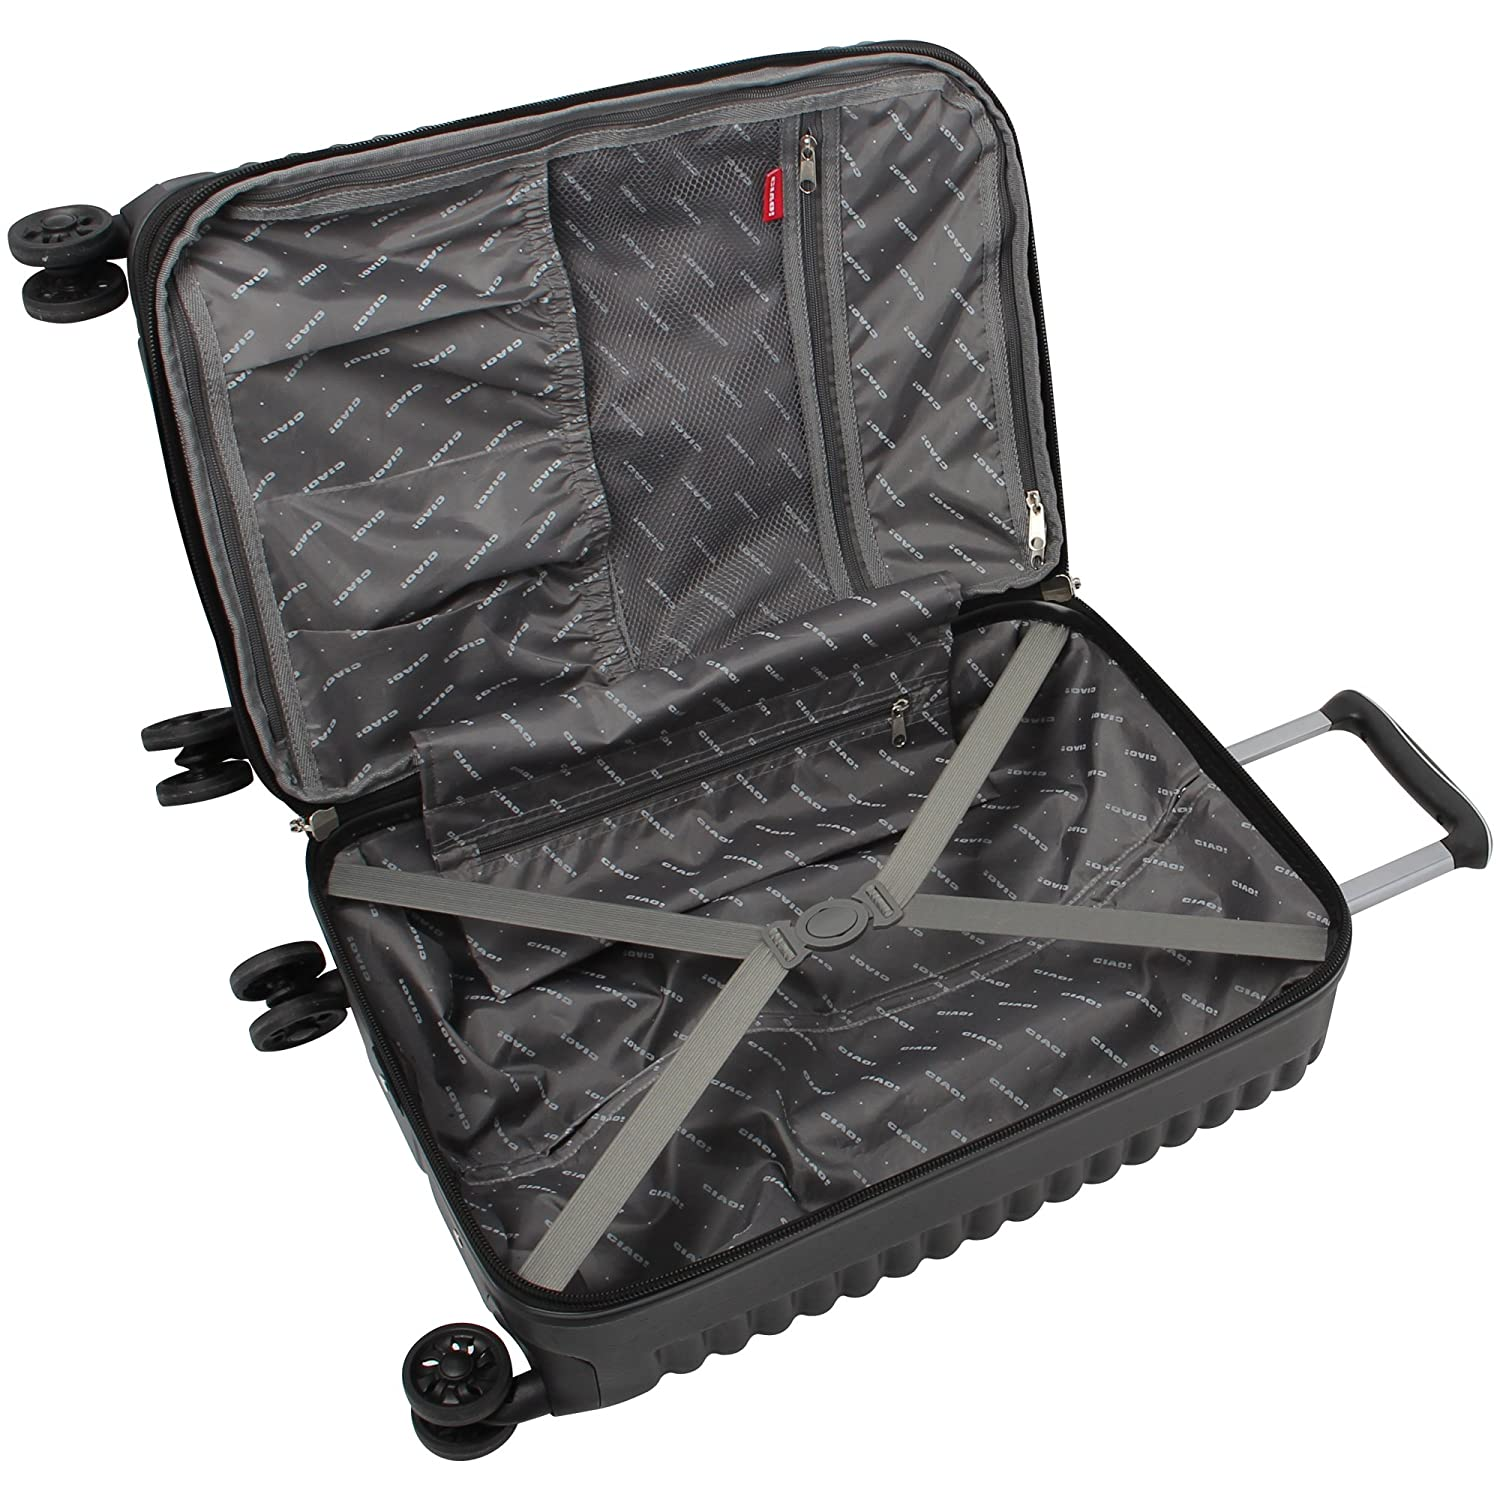 Ciao Carry On Luggage Costco 53 Off Teknikcnc Com If you're a regular costco shopper, you probably have gotten used to the rhythm of their seasonal merchandise rotation, usually. teknikcnc com